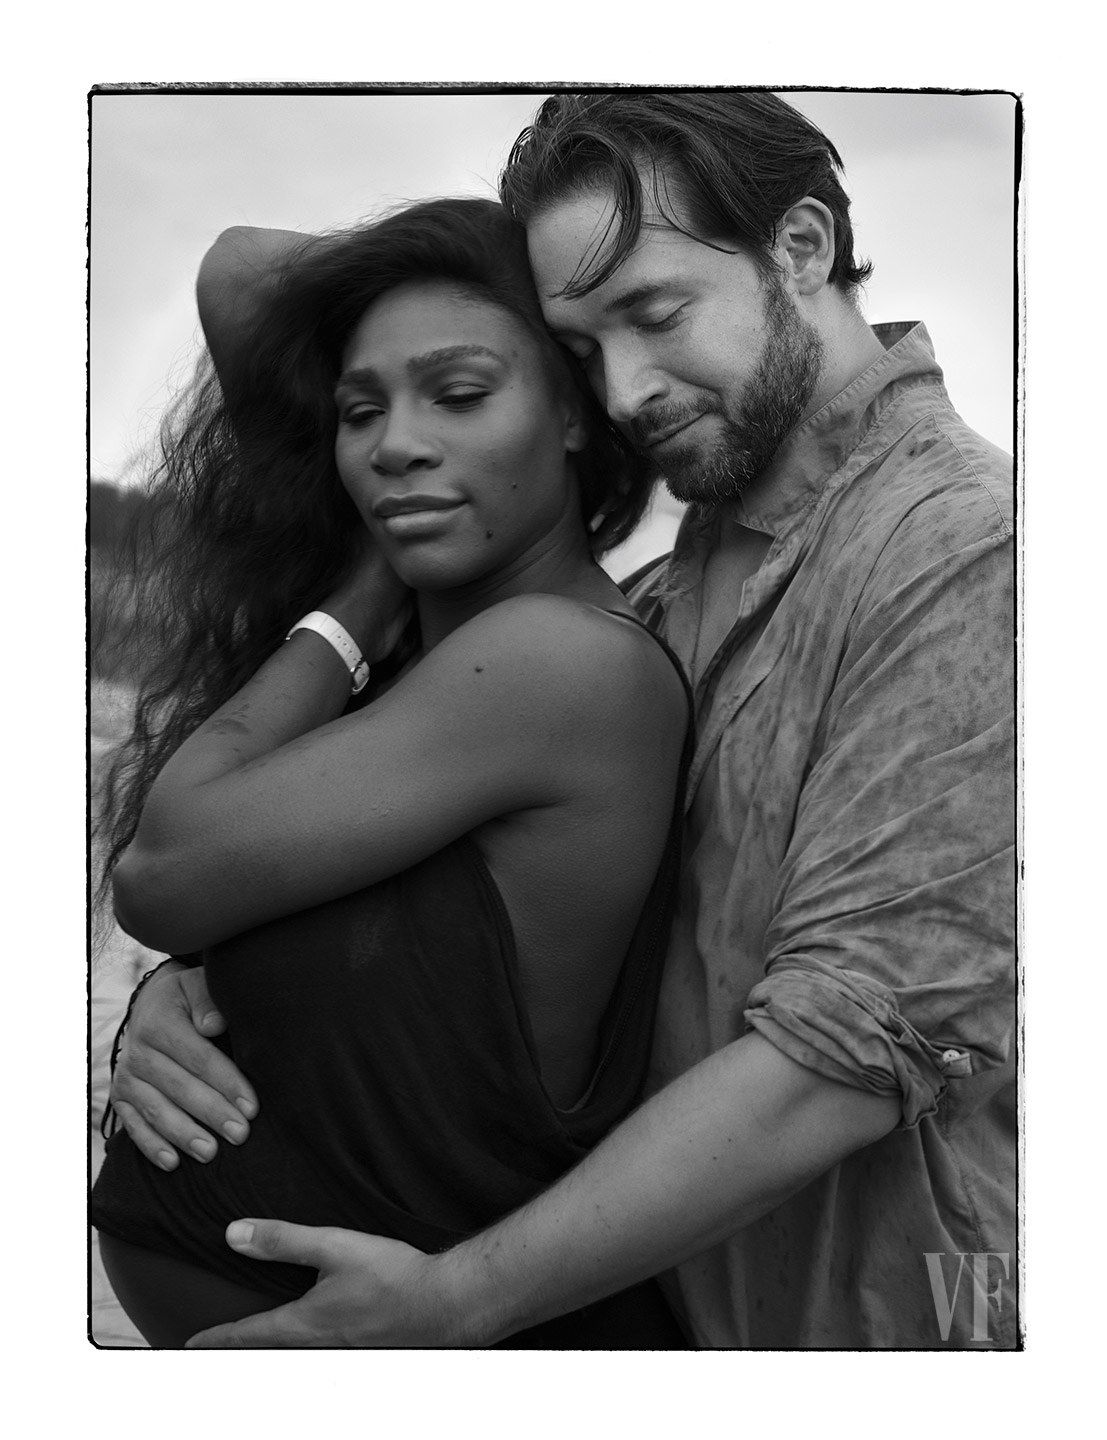 07fb491cf1d Last January, on the eve of the Australian Open, Serena Williams handed her  fiancé, Alexis Ohanian, a paper bag containing six positive pregnancy tests.